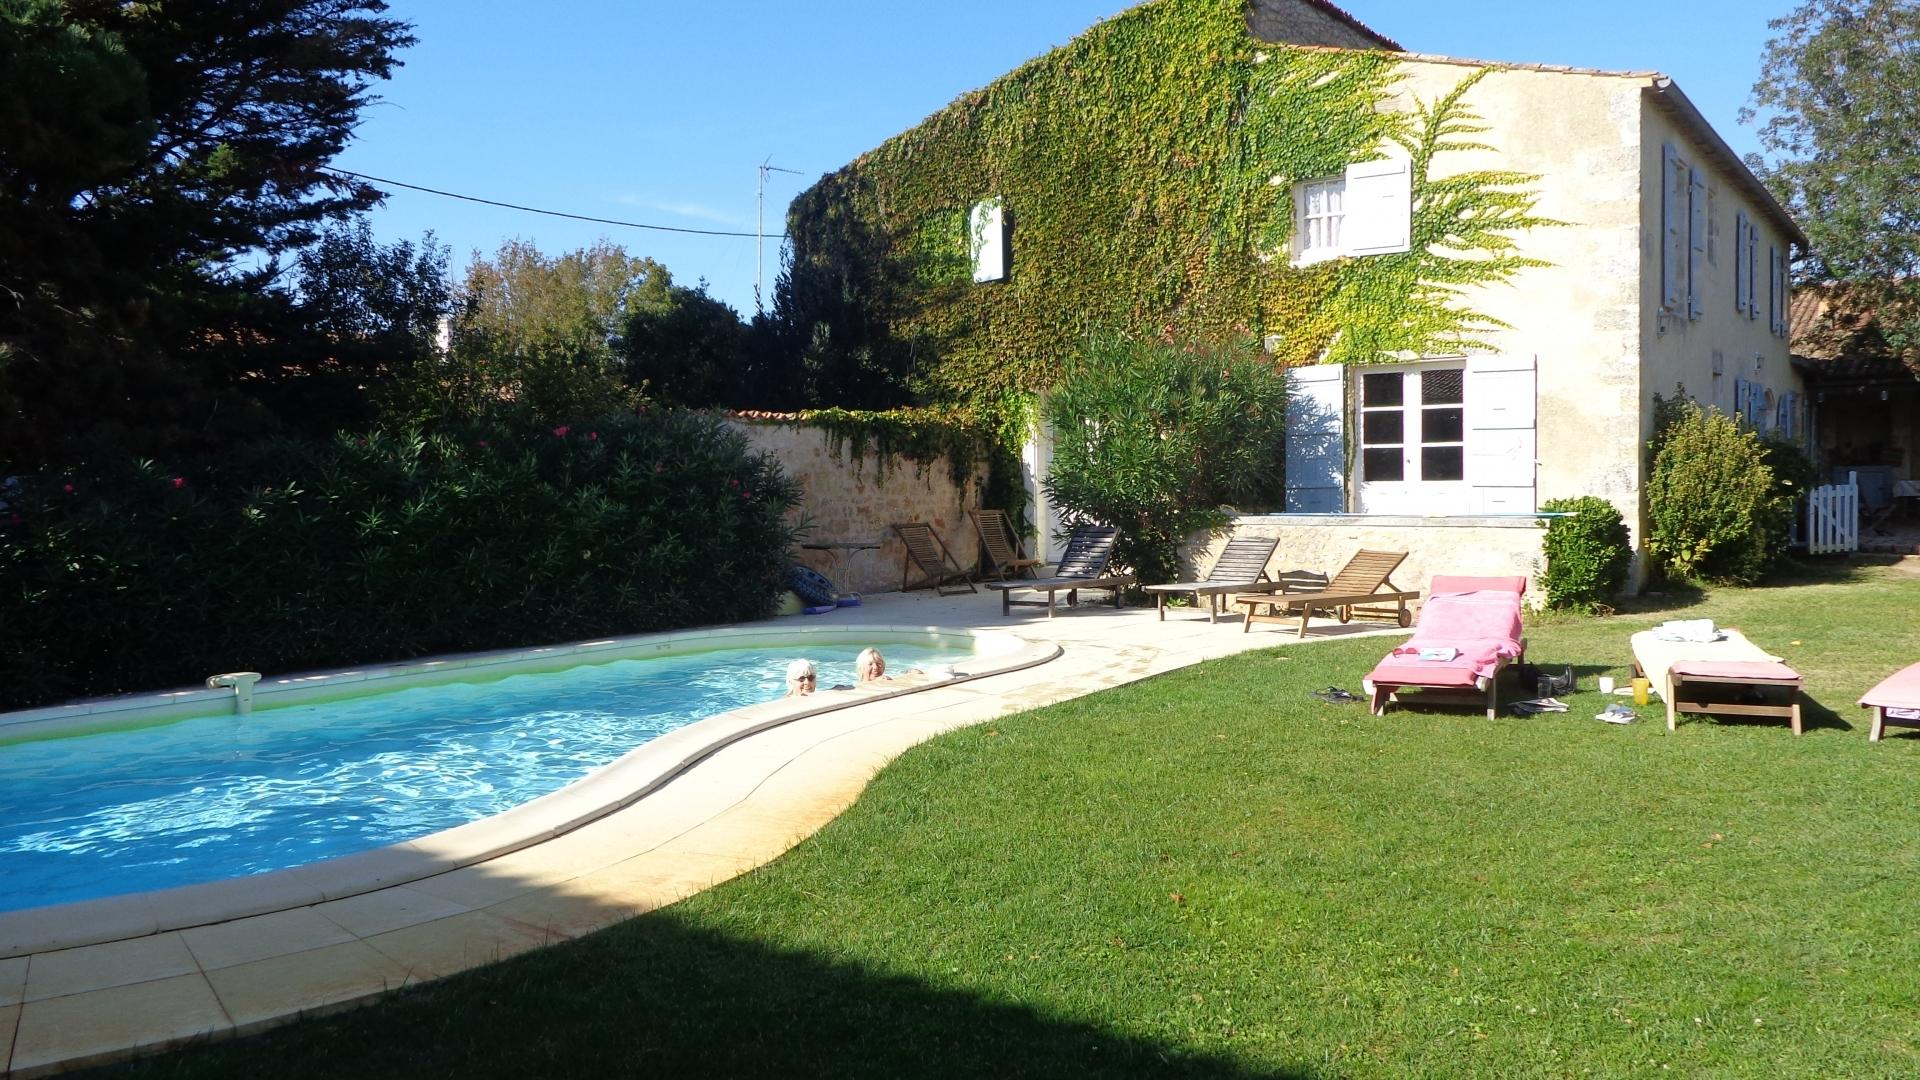 7 Bedroom Cottage in Poitou-Charentes, France